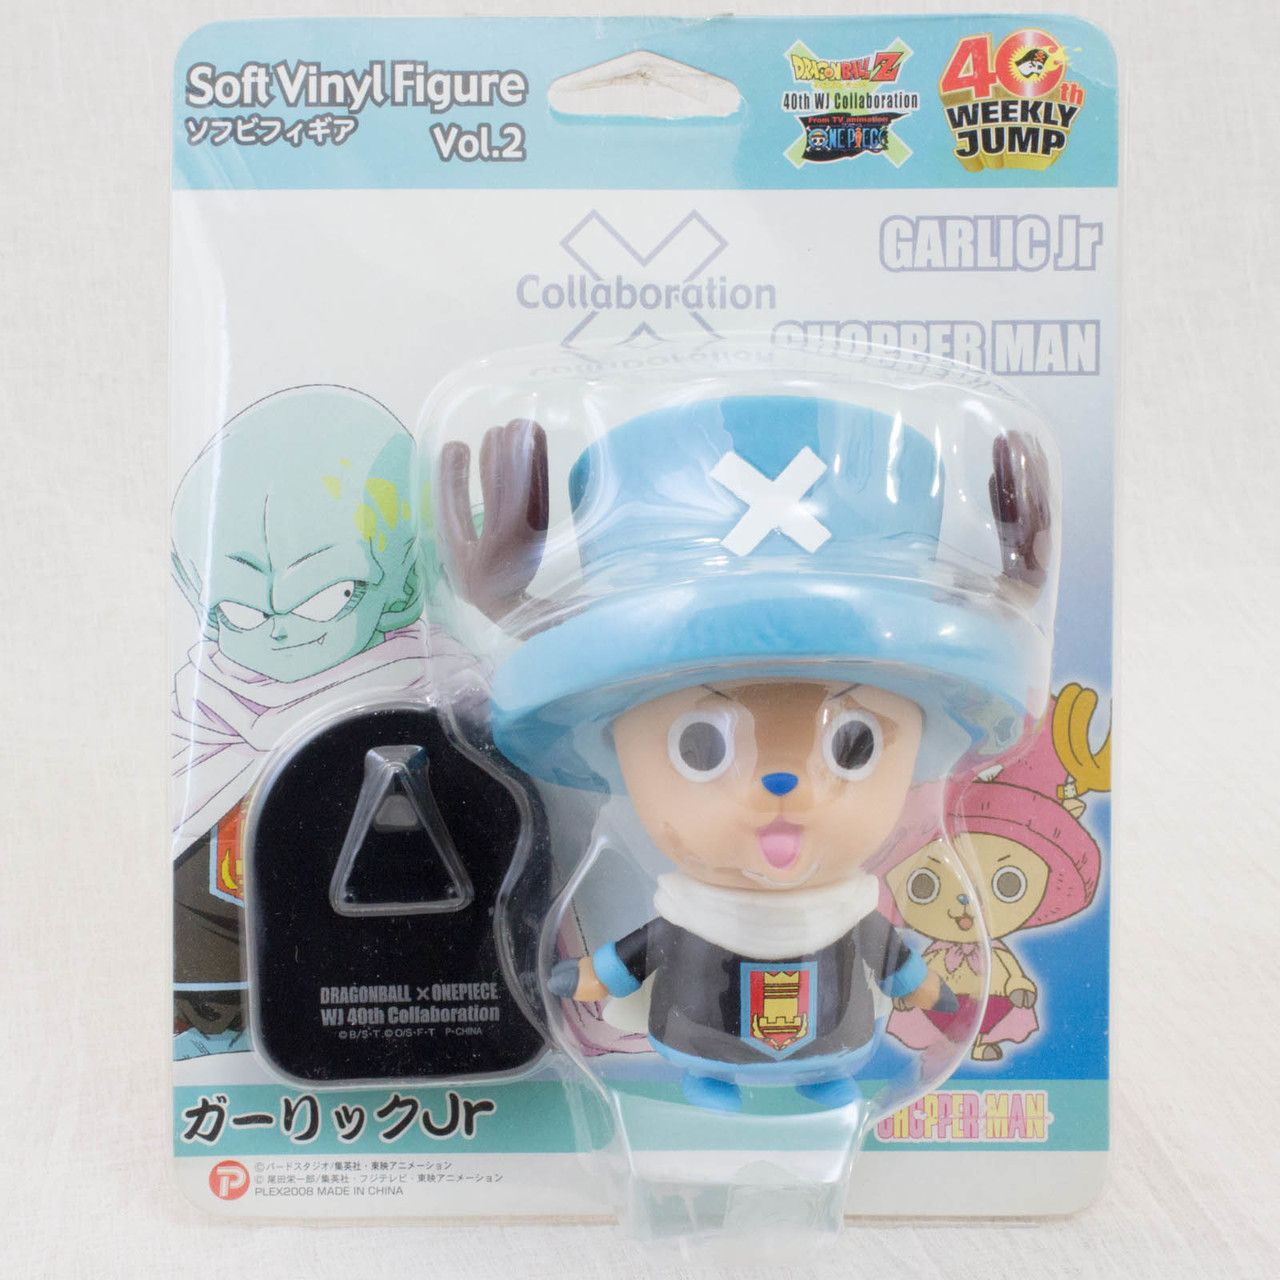 Dragon Ball Z X One Piece Chopper Man X Garlic Jr Sofubi Figure Japan Anime Operation garlic, a royal air force second world war attack. x garlic jr sofubi figure japan anime